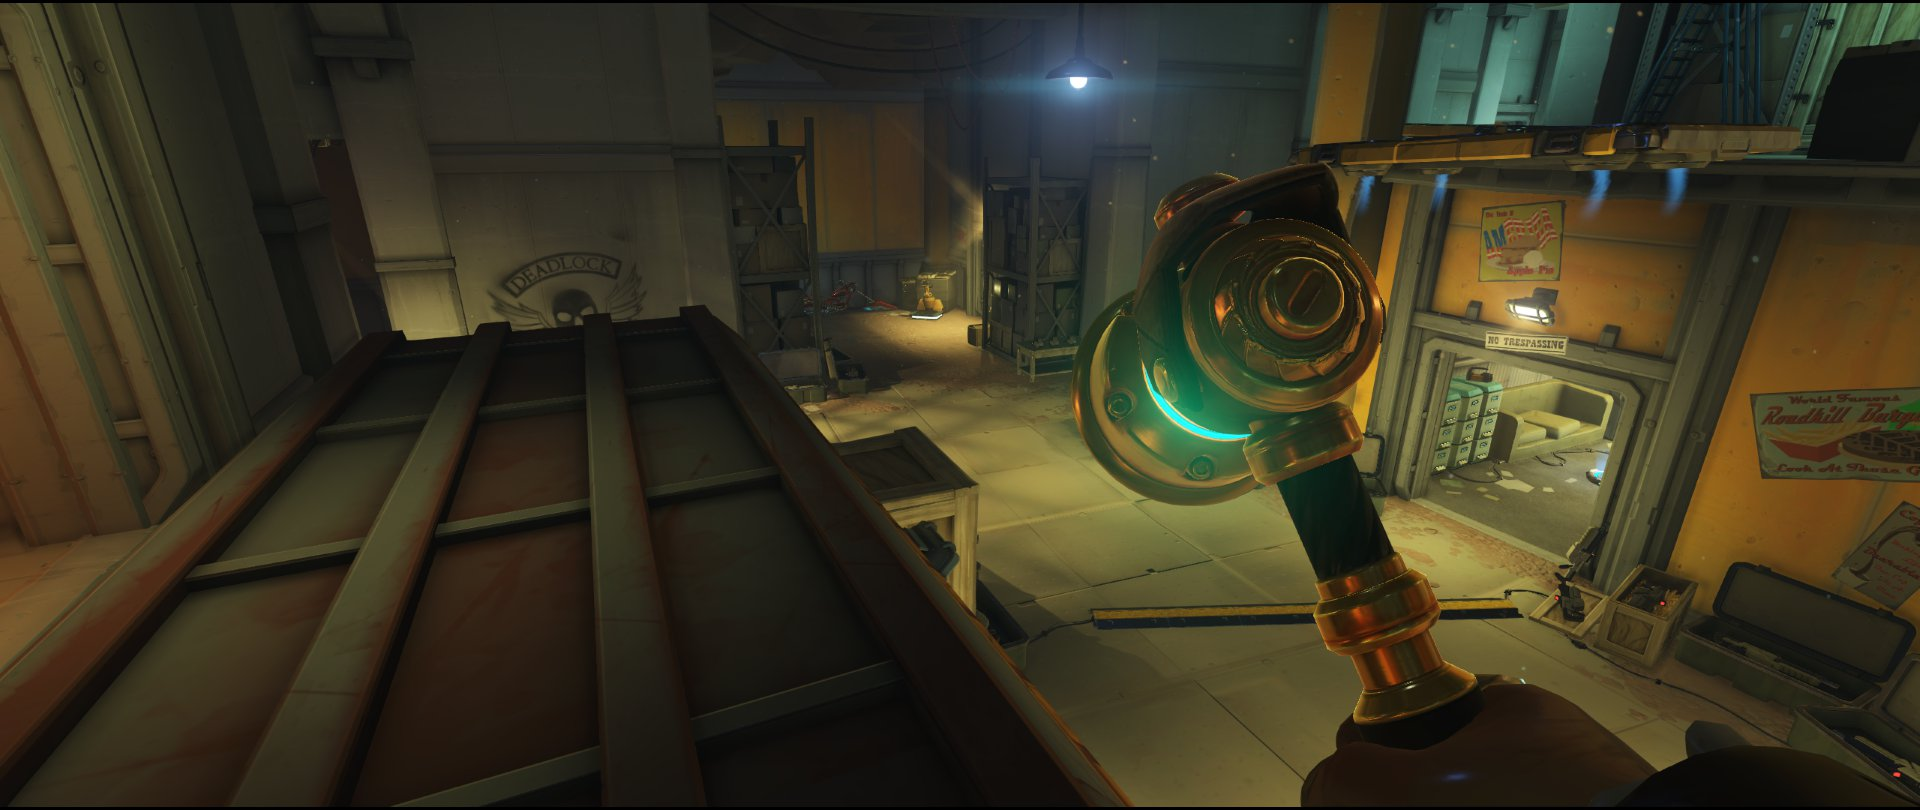 First area third point turret placement Torbjorn Route 66 Overwatch